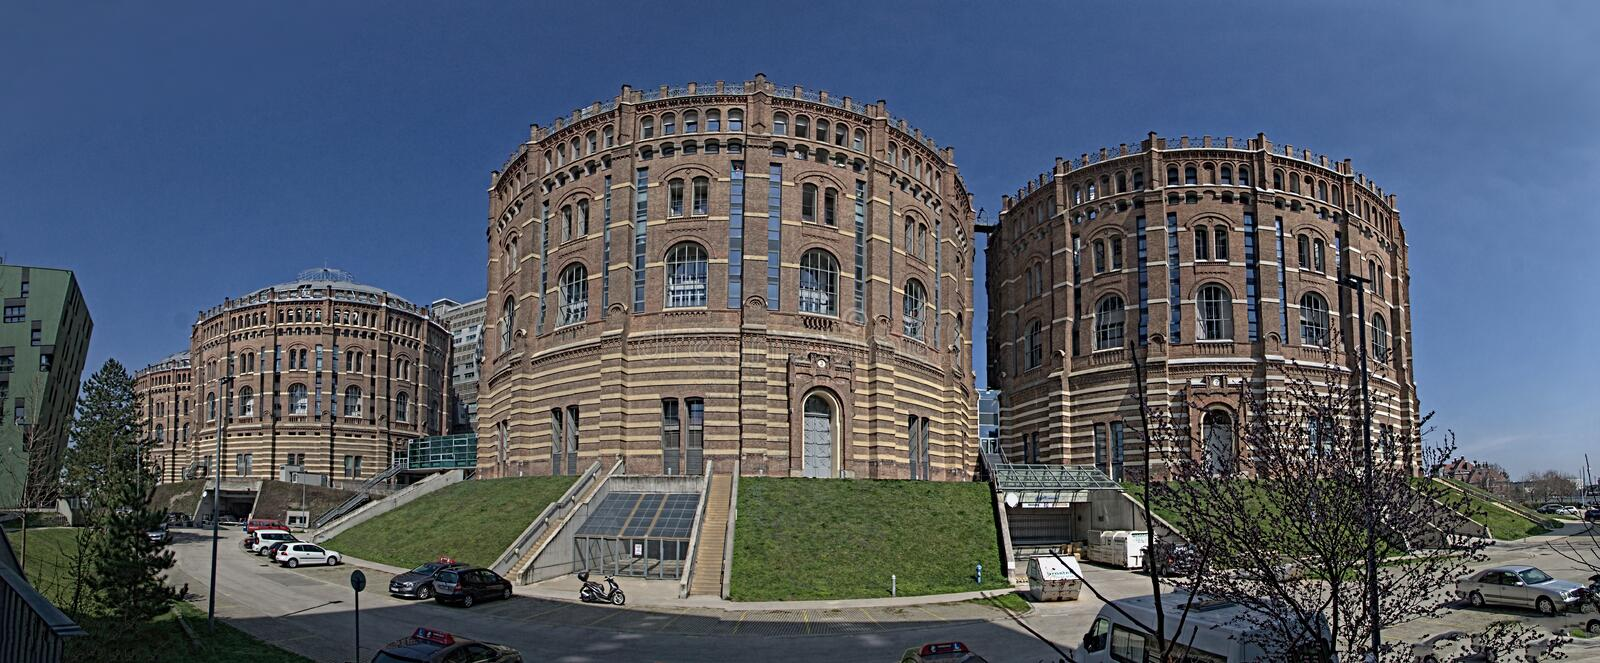 The Vienna Gasometer on sunny day in Vienna, Austria. The gasometers in Vienna-Simmering are four former gas tanks preserved in the facade. They have been royalty free stock photos